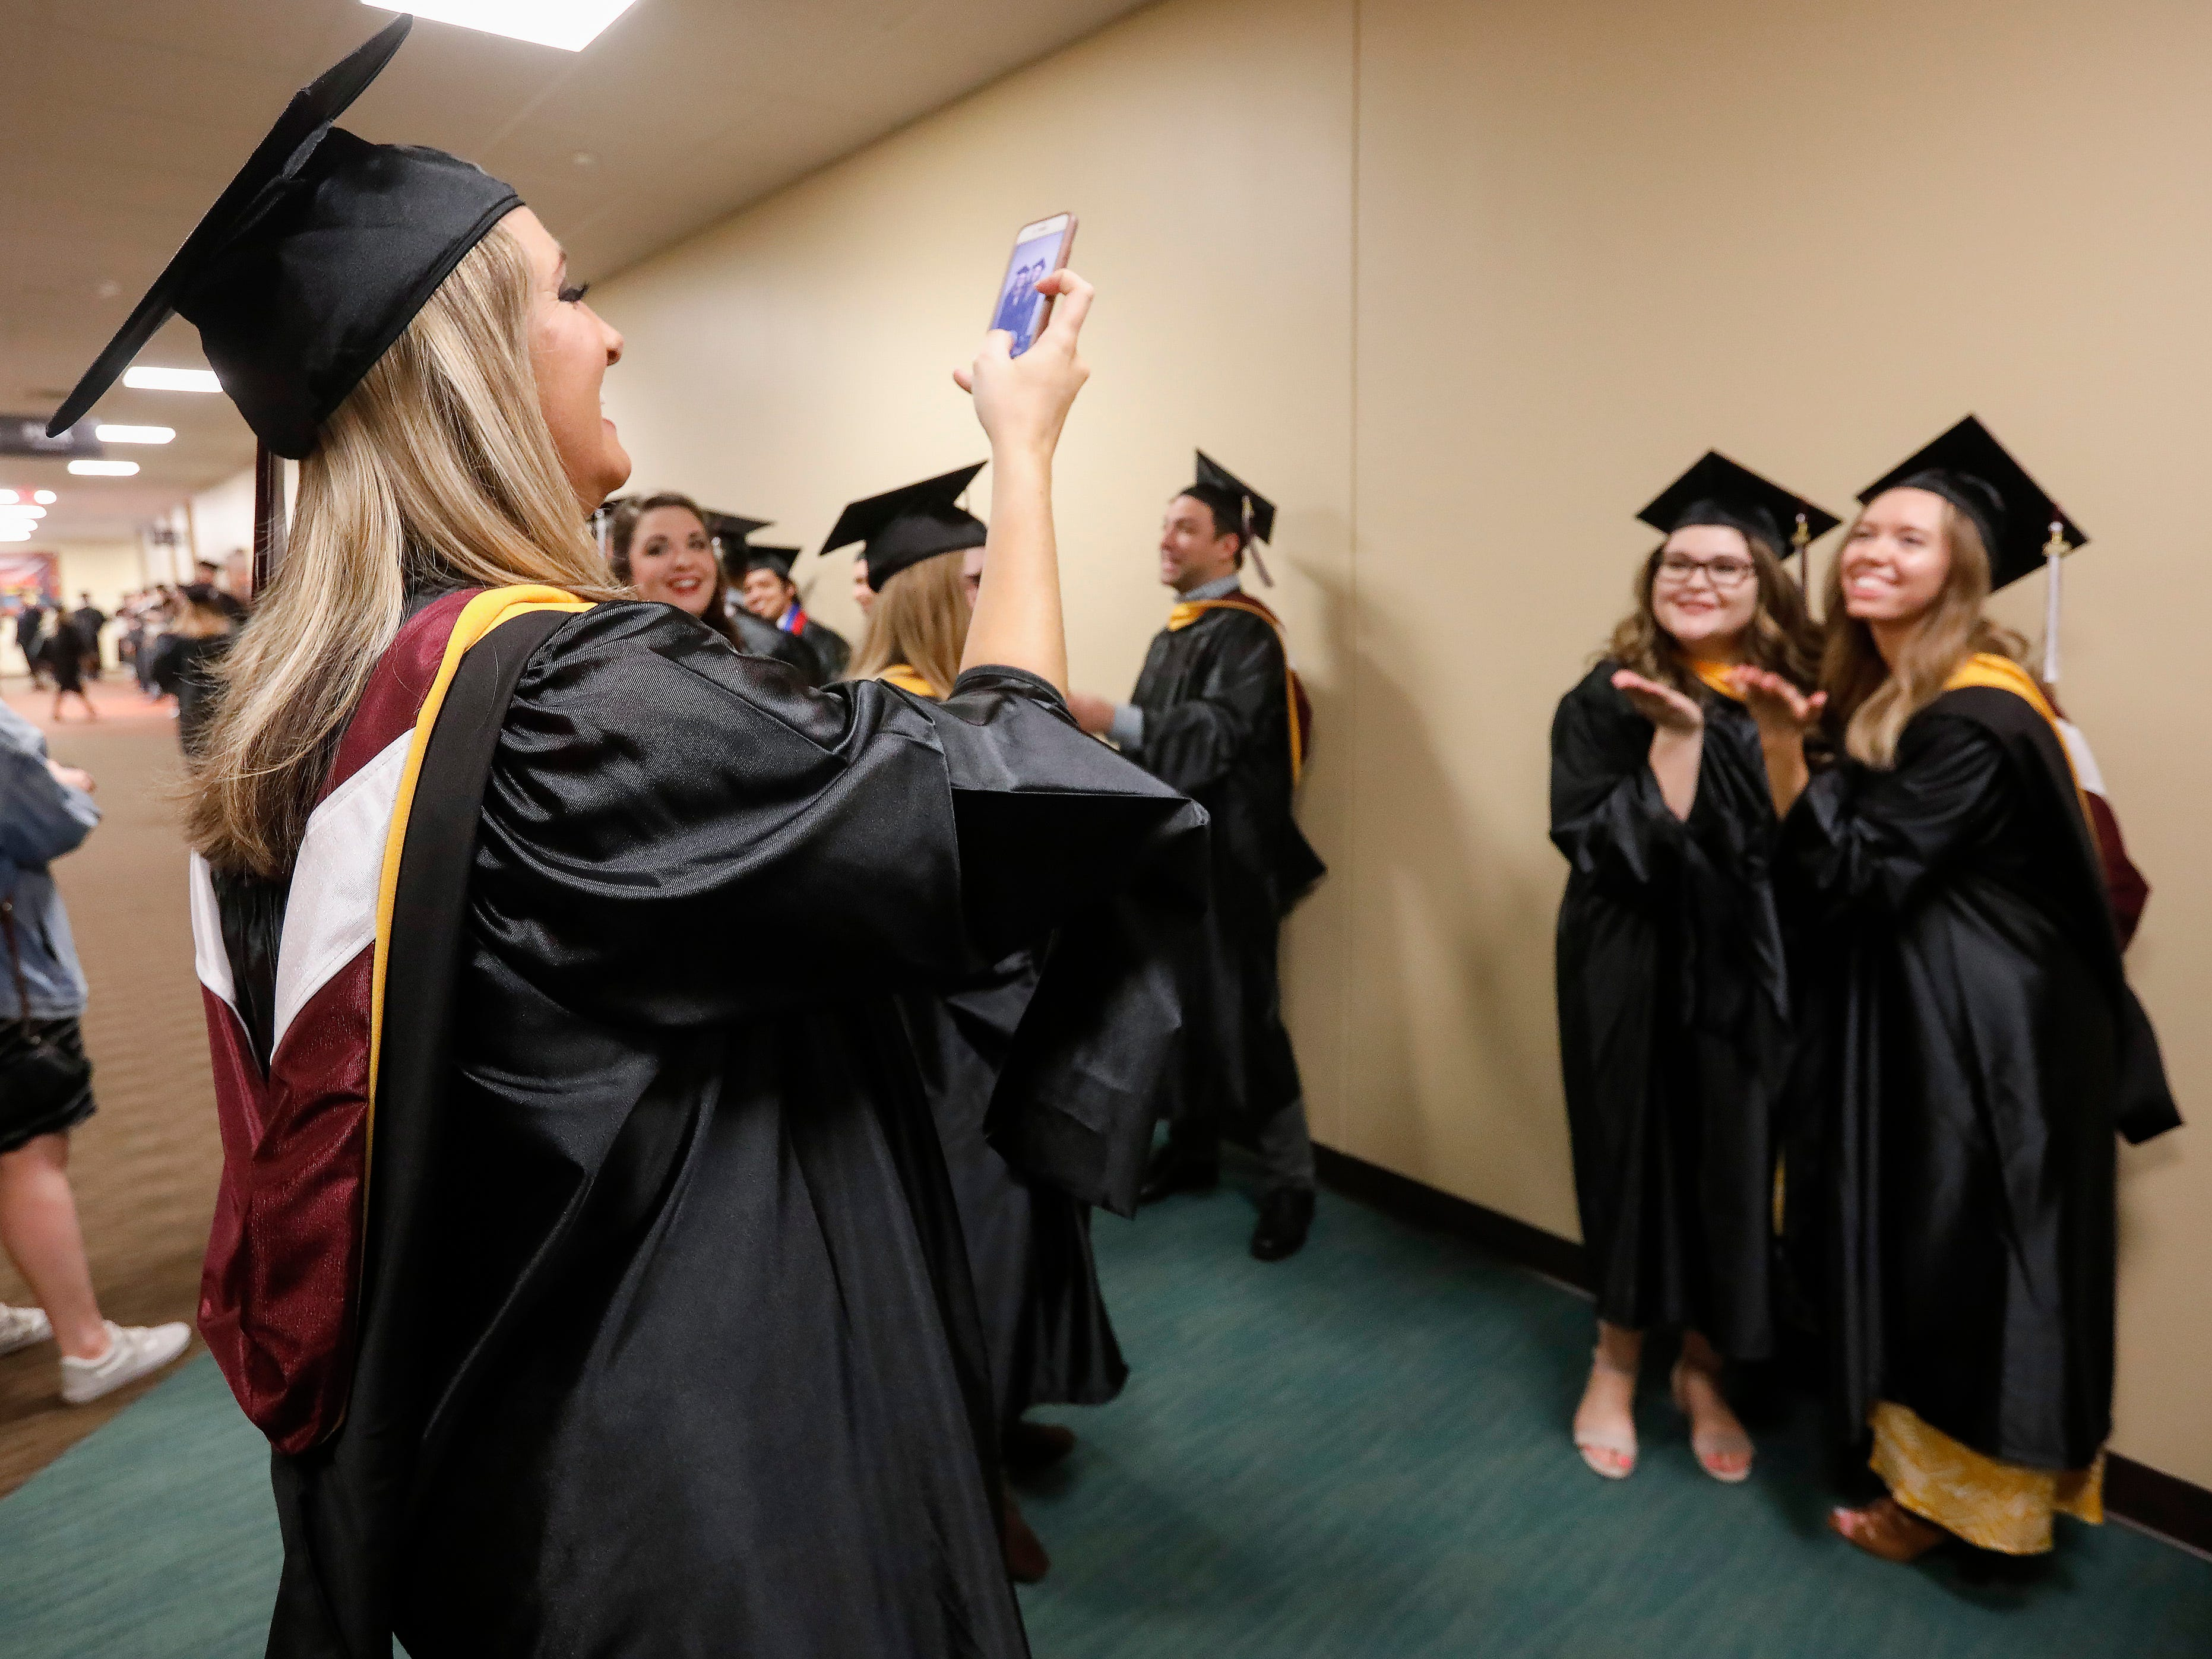 Scenes from Evangel University's 2019 Commencement Ceremony at James River Church in Ozark on Friday, May 3, 2019.